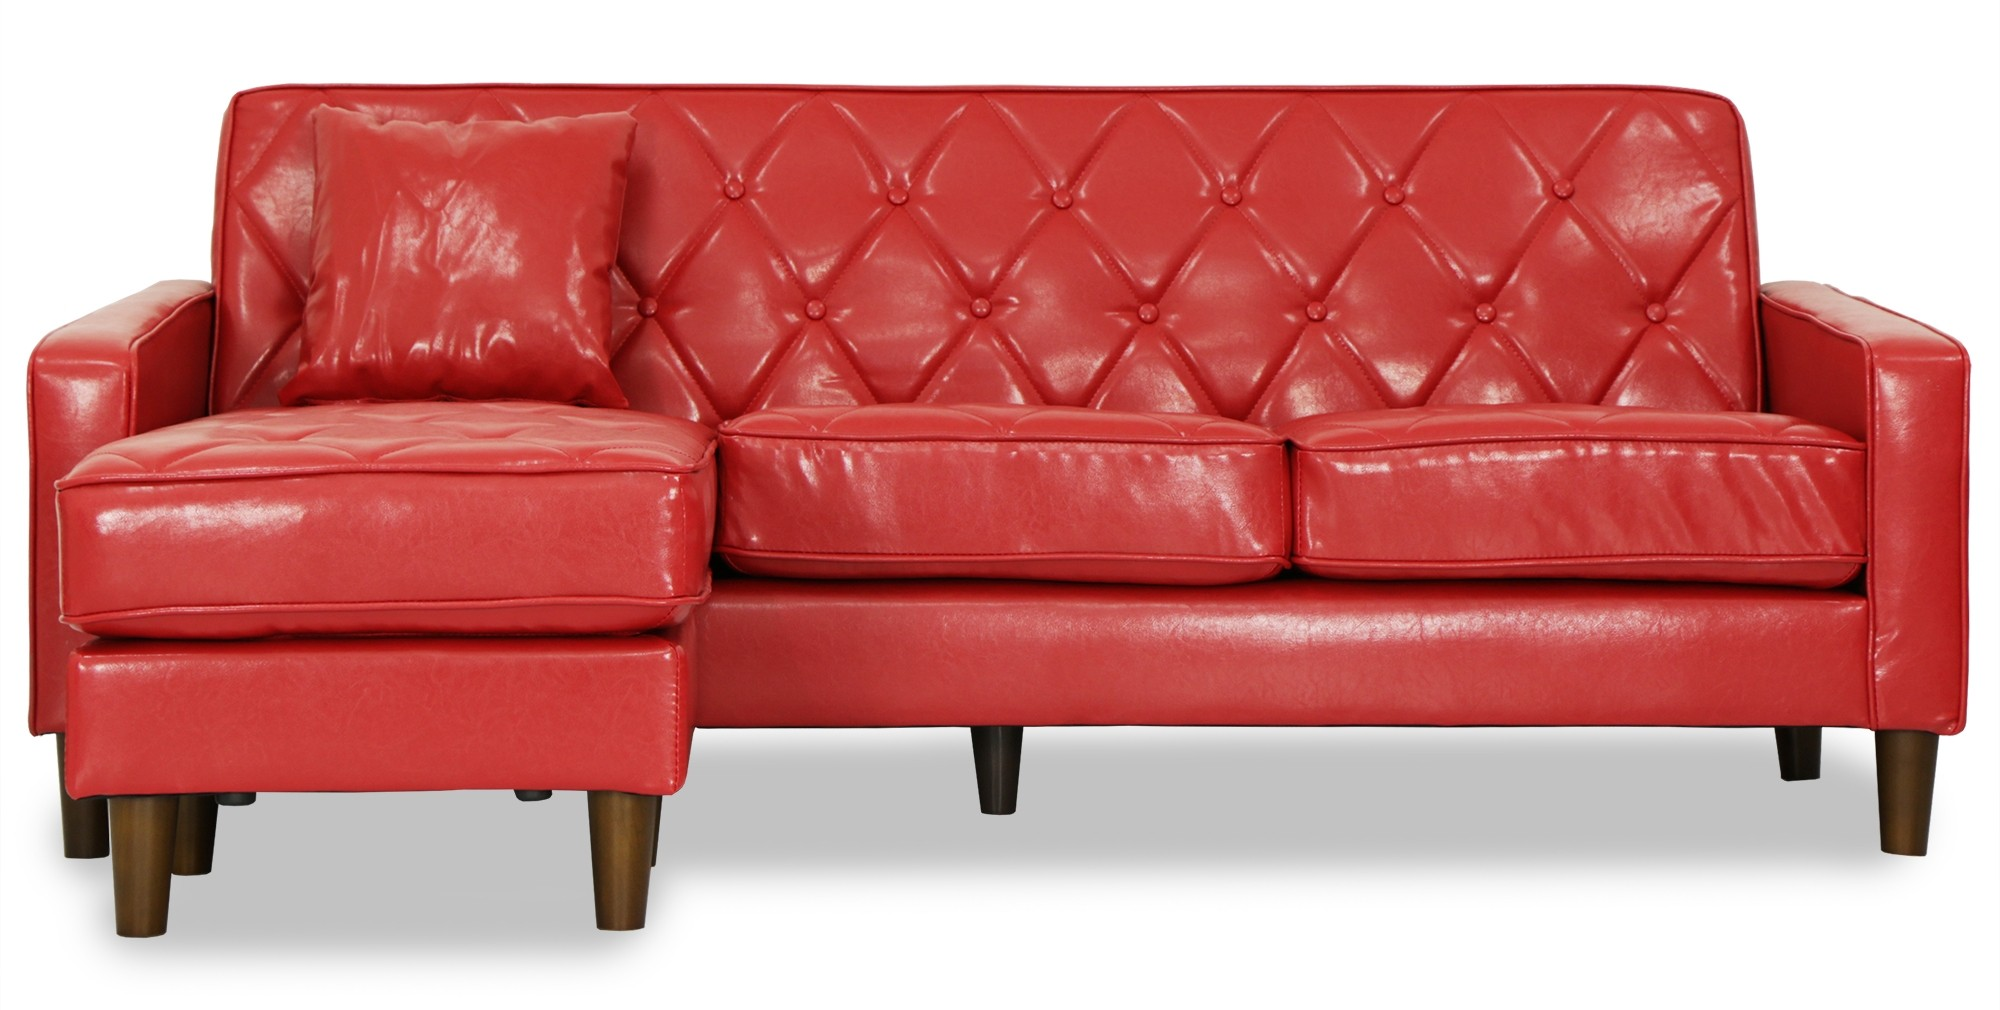 Rokurou 3 Seater L Shape Sofa Red